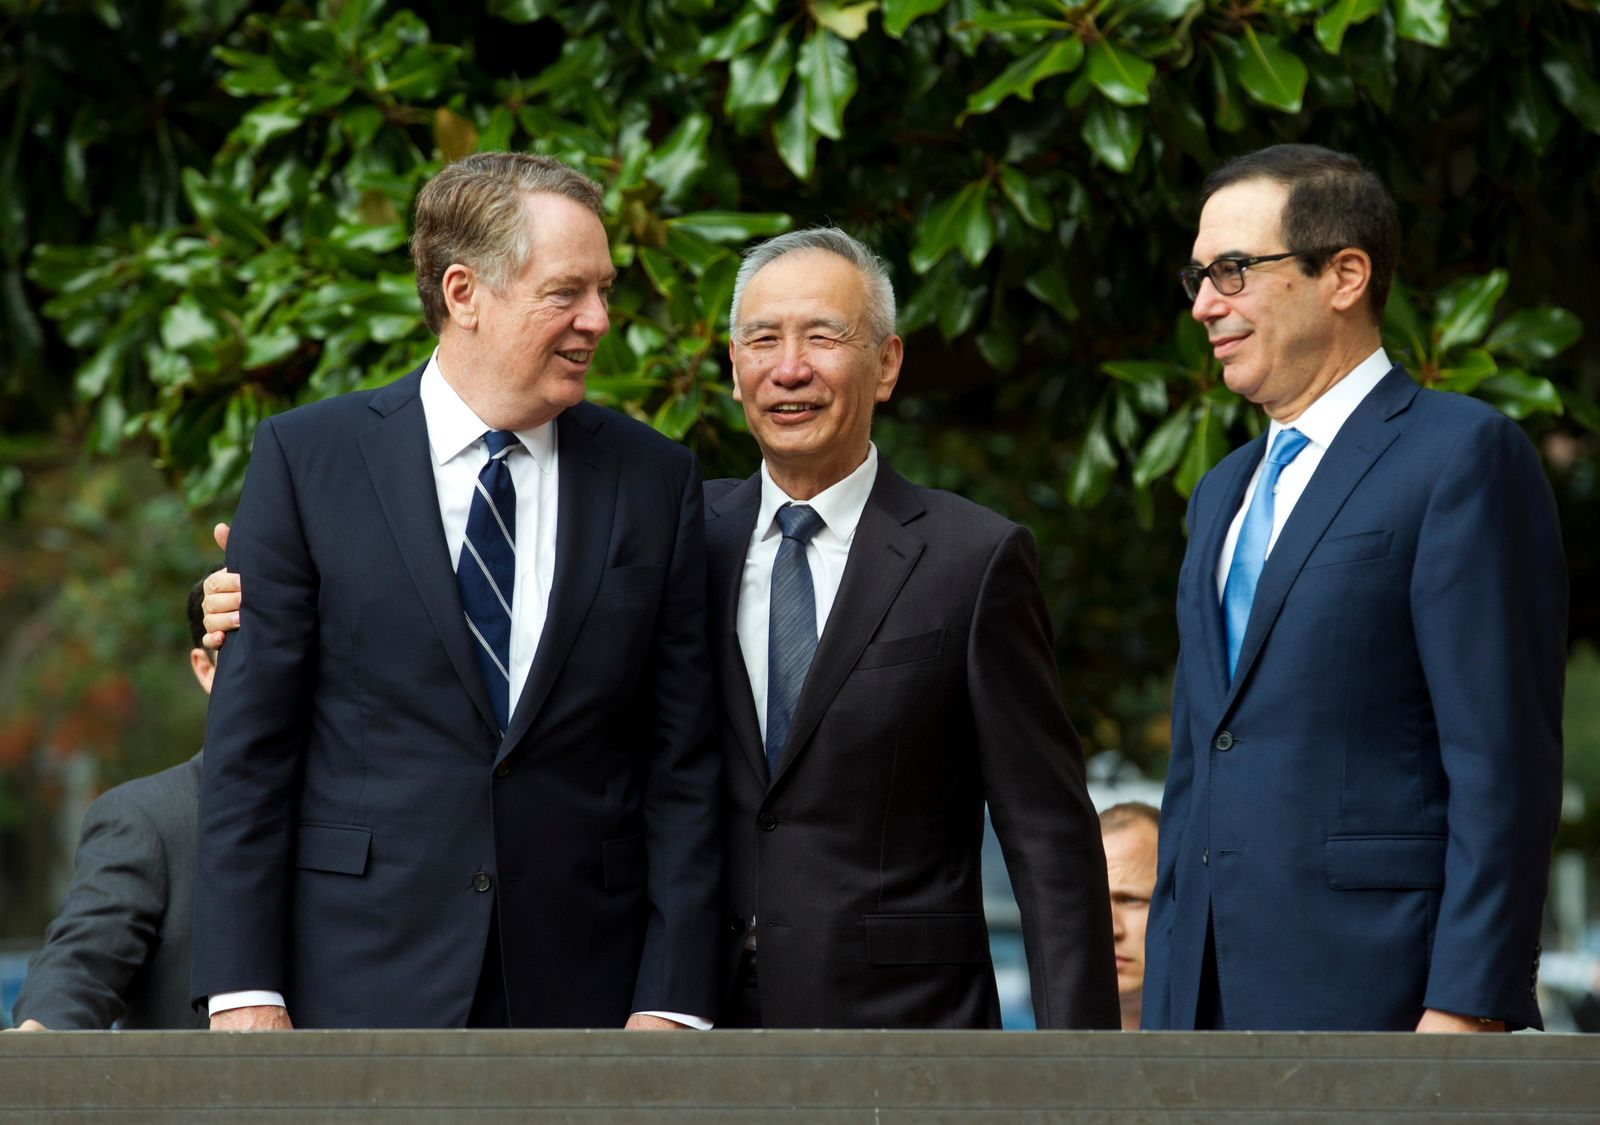 Chinese Vice Premier Liu He accompanied by U.S. Trade Representative Robert Lighthizer, left, and Treasury Secretary Steven Mnuchin, greets the media before a minister-level trade meeting in Washington, Thursday, Oct. 10, 2019. (AP Photo/Jose Luis Magana)